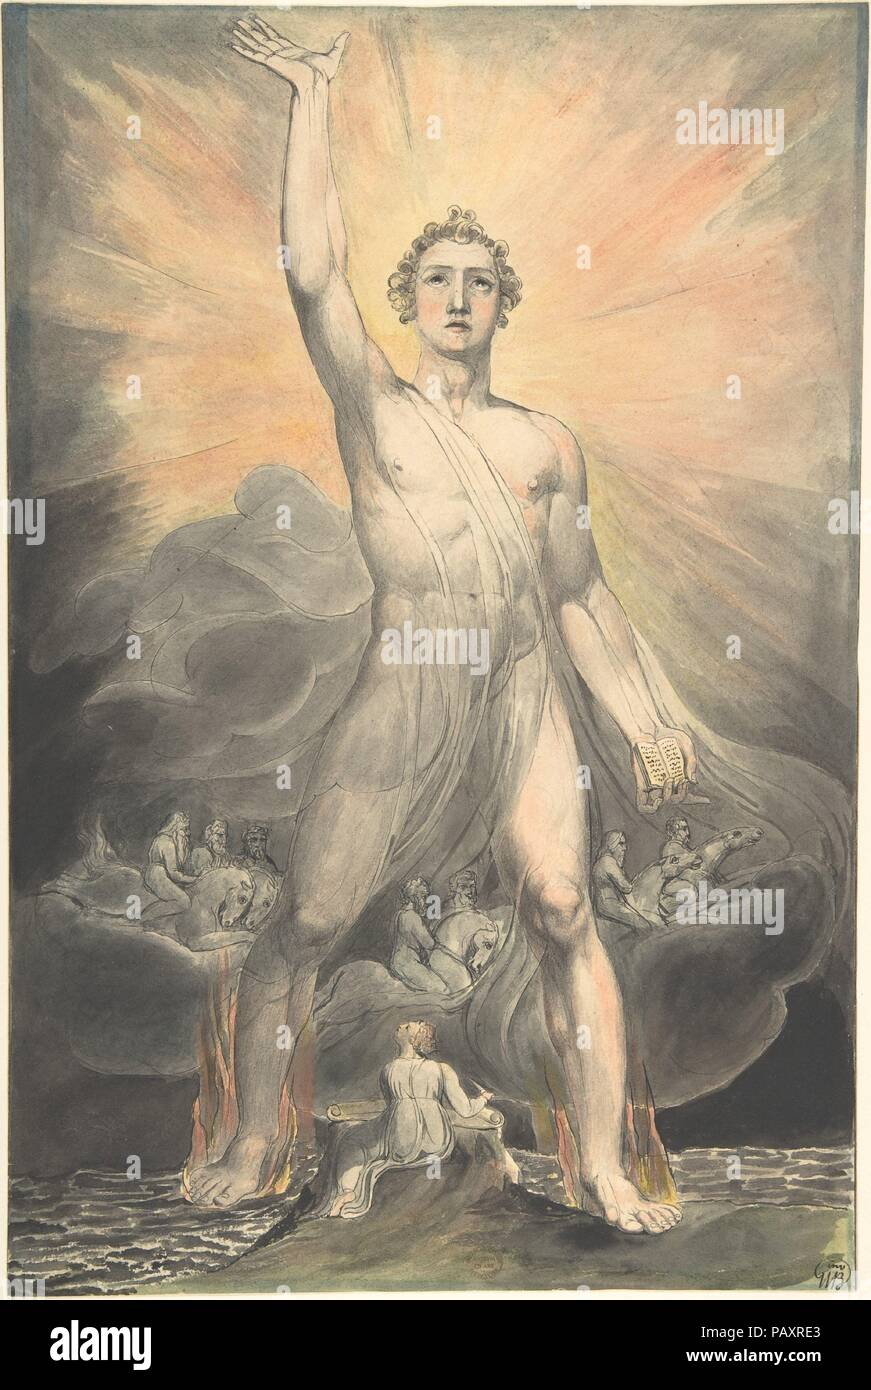 Angel of the Revelation (Book of Revelation, chapter 10). Artist: William Blake (British, London 1757-1827 London). Dimensions: Sheet: 15 7/16 × 10 1/4 in. (39.2 × 26 cm). Date: ca. 1803-5.  This work comes from a series of eighty biblical watercolors that Blake made for Thomas Butts, an important patron. He found the subject in chapter 10 of the book of Revelation and describes both the author and his vision. A diminutive Saint John, pen in hand, on the island of Patmos, gazes at a 'mighty angel . . . clothed with a cloud . . . a rainbow was upon his head, and his face was as it were the sun, - Stock Image